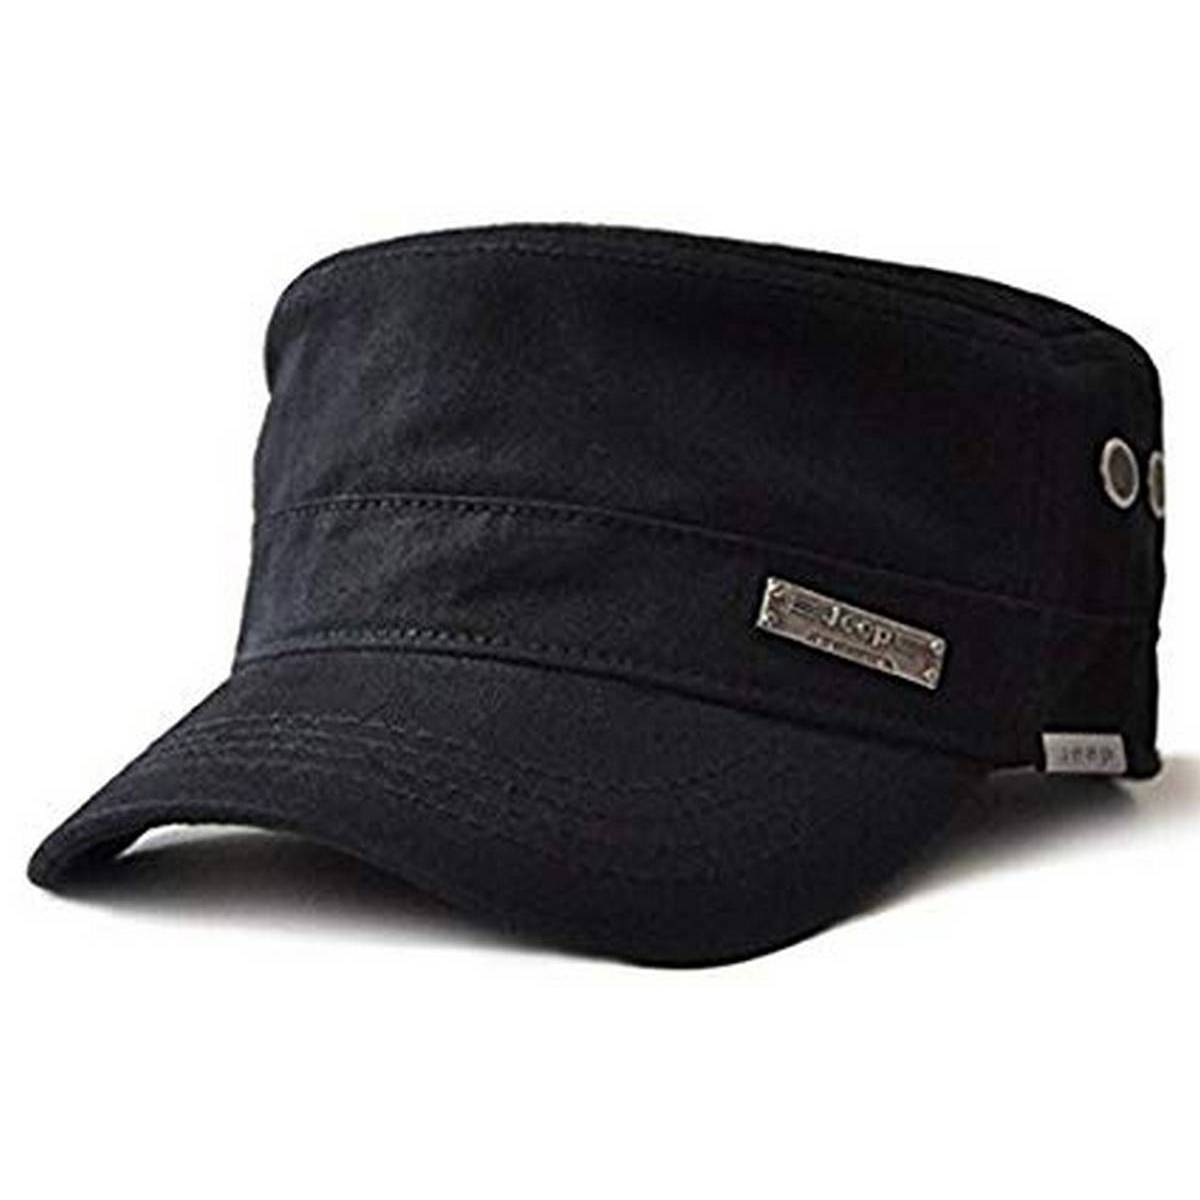 Military Style Jeep Army Flat Cap Vintage Baseball Cap Sport Sun Hat Color Family Coffee For MEN & WOMEN'S